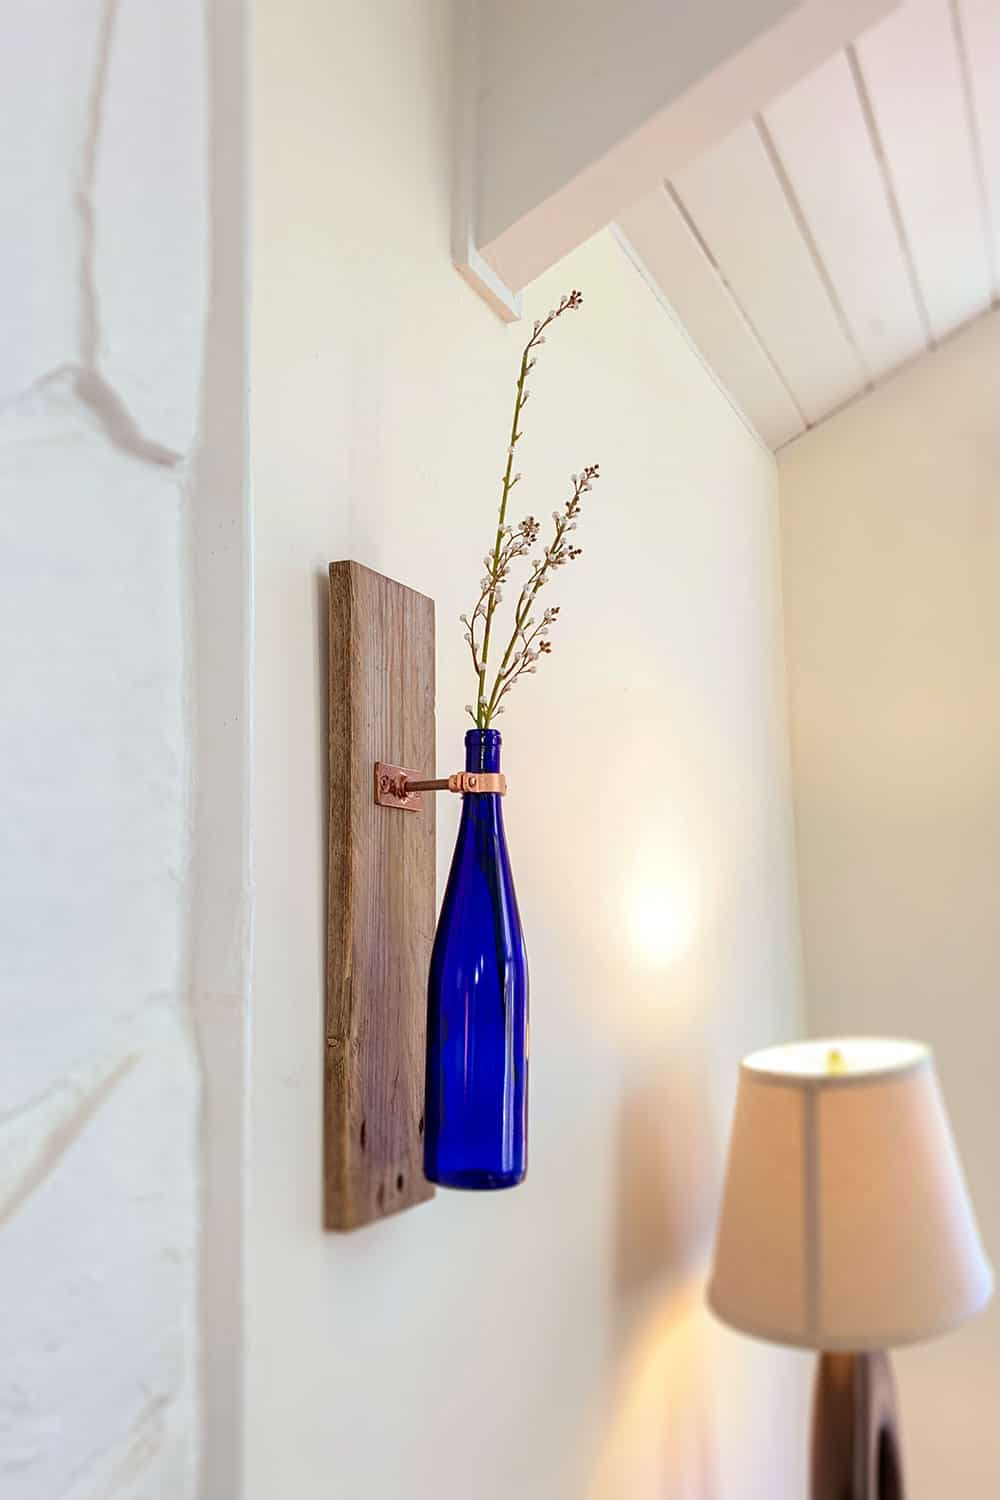 Make A Wine Bottle Wall Vase | An Easy Step By Step Tutorial